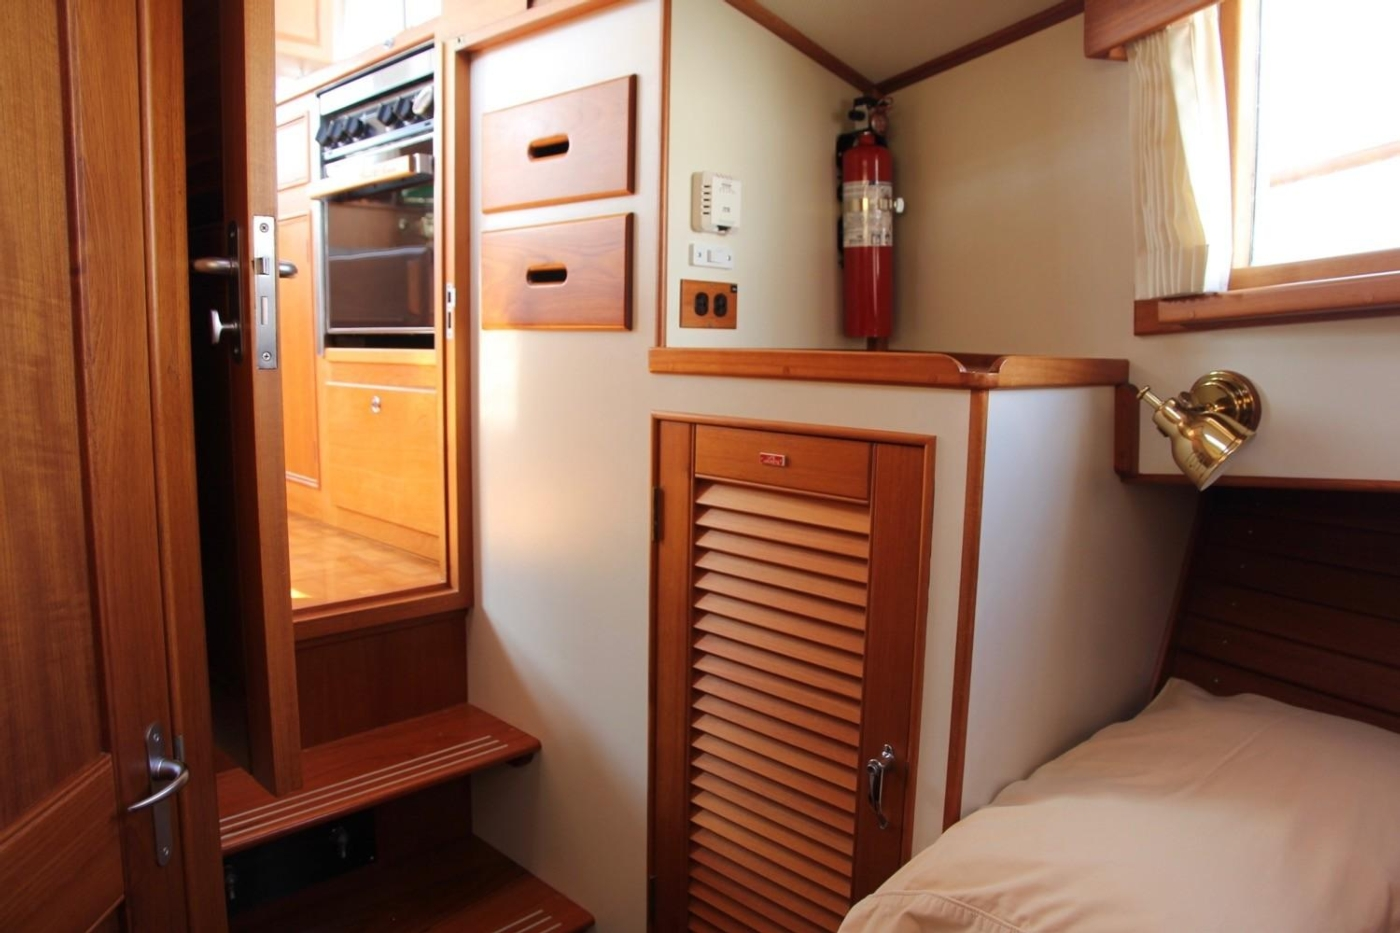 1995 Grand Banks Classic, Forward Cabin Hanging Locker